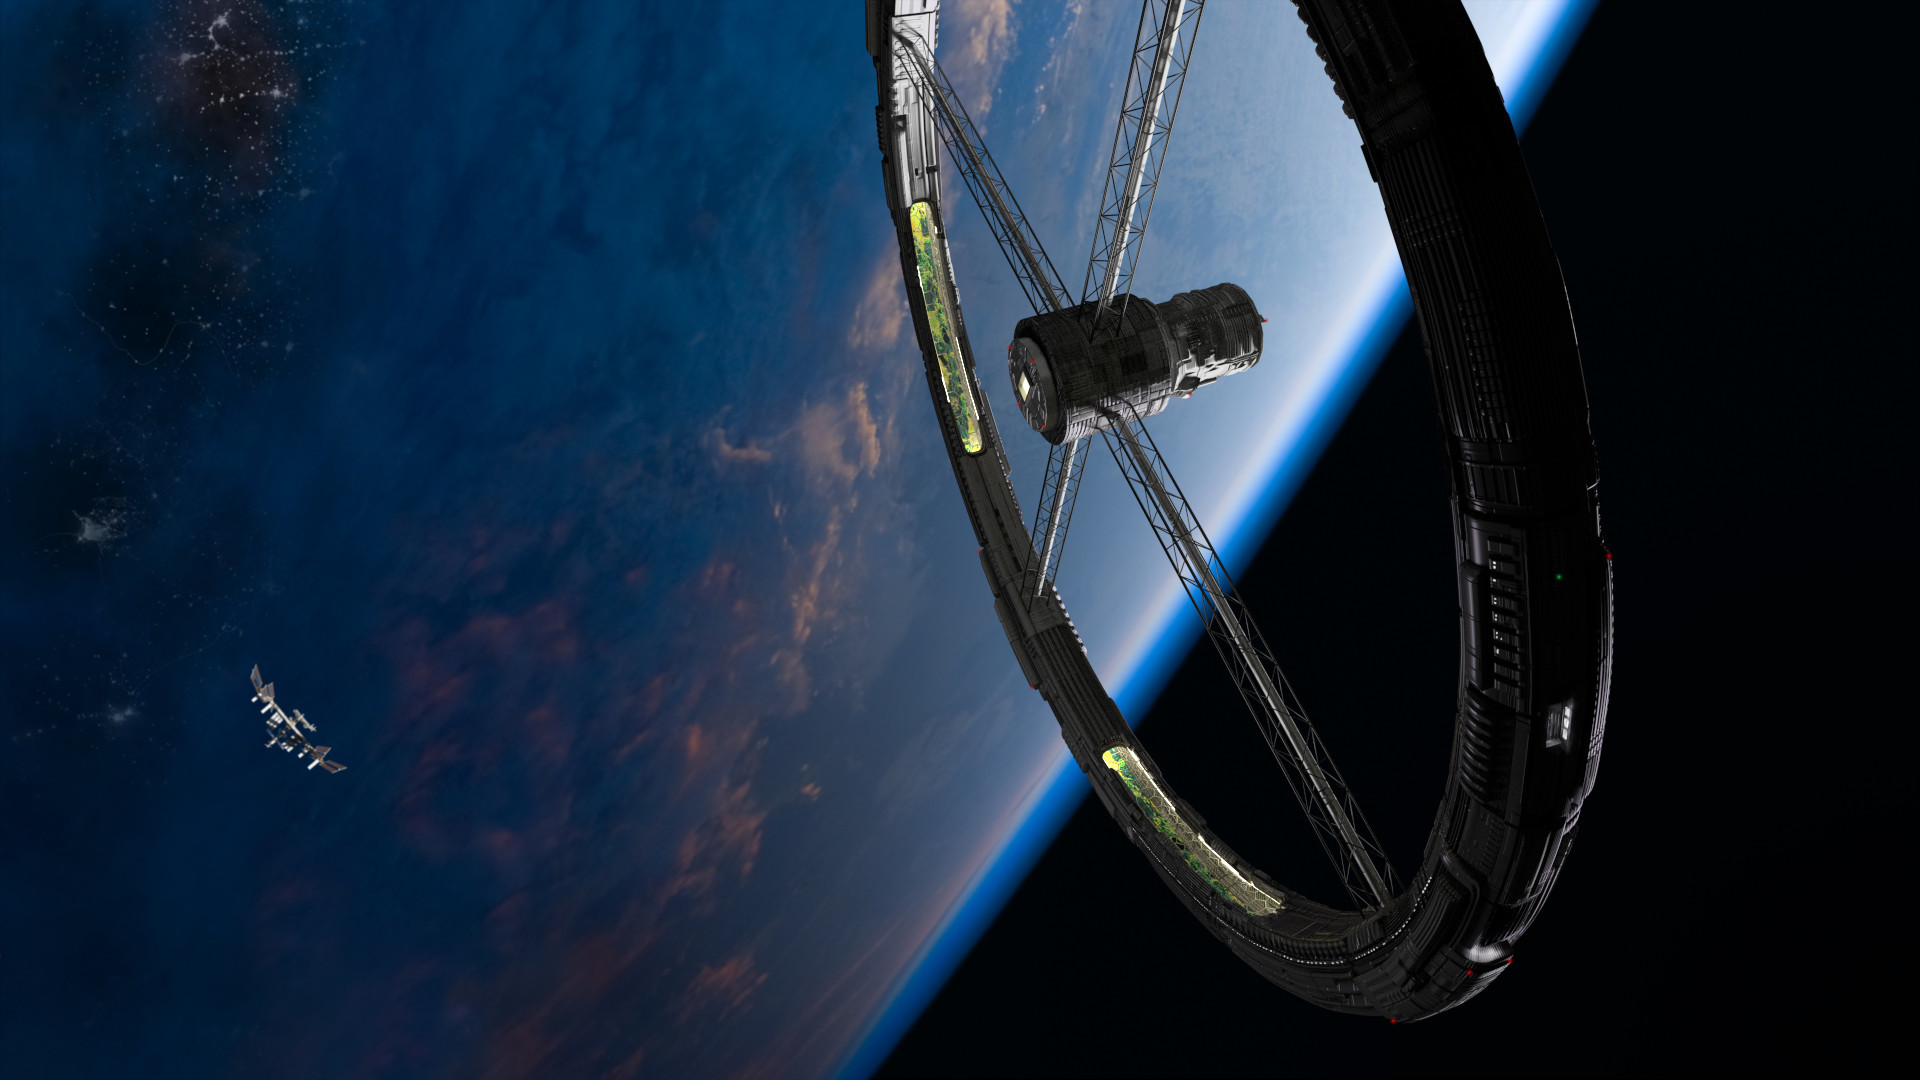 Daily Wallpaper: International Space Stations   I Like To Waste My Time